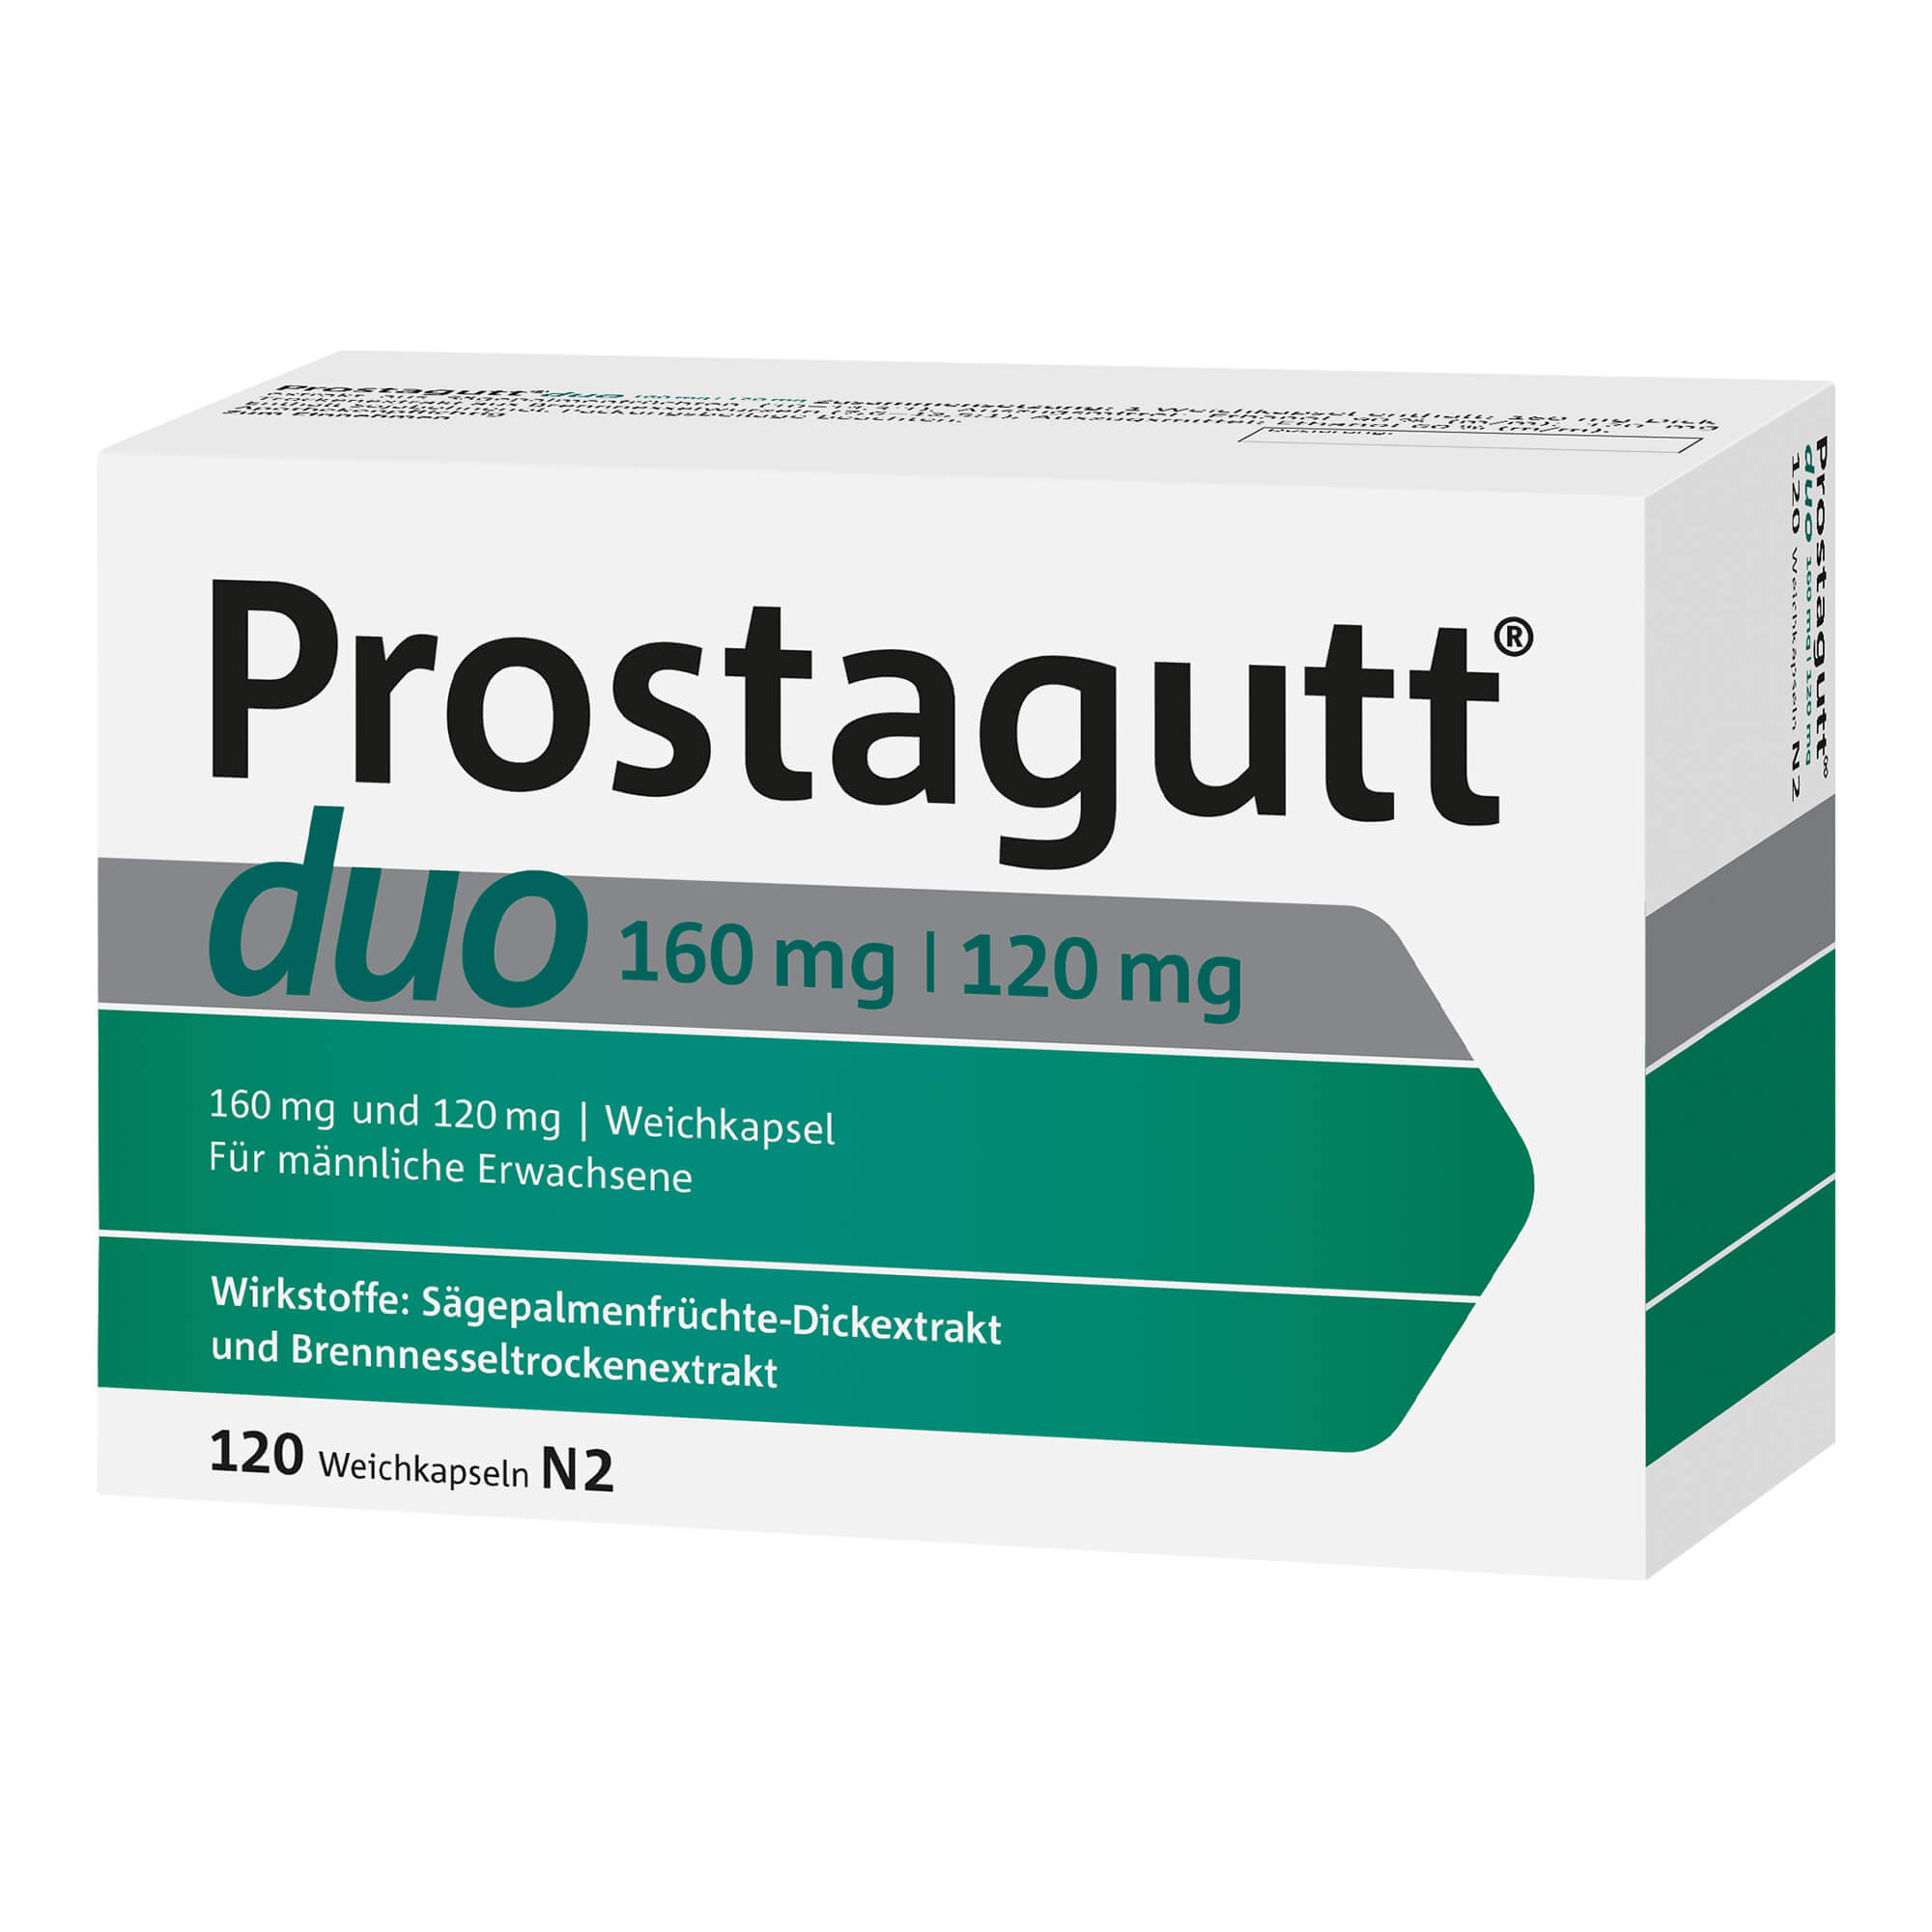 Prostagutt duo 160 mg / 120 mg